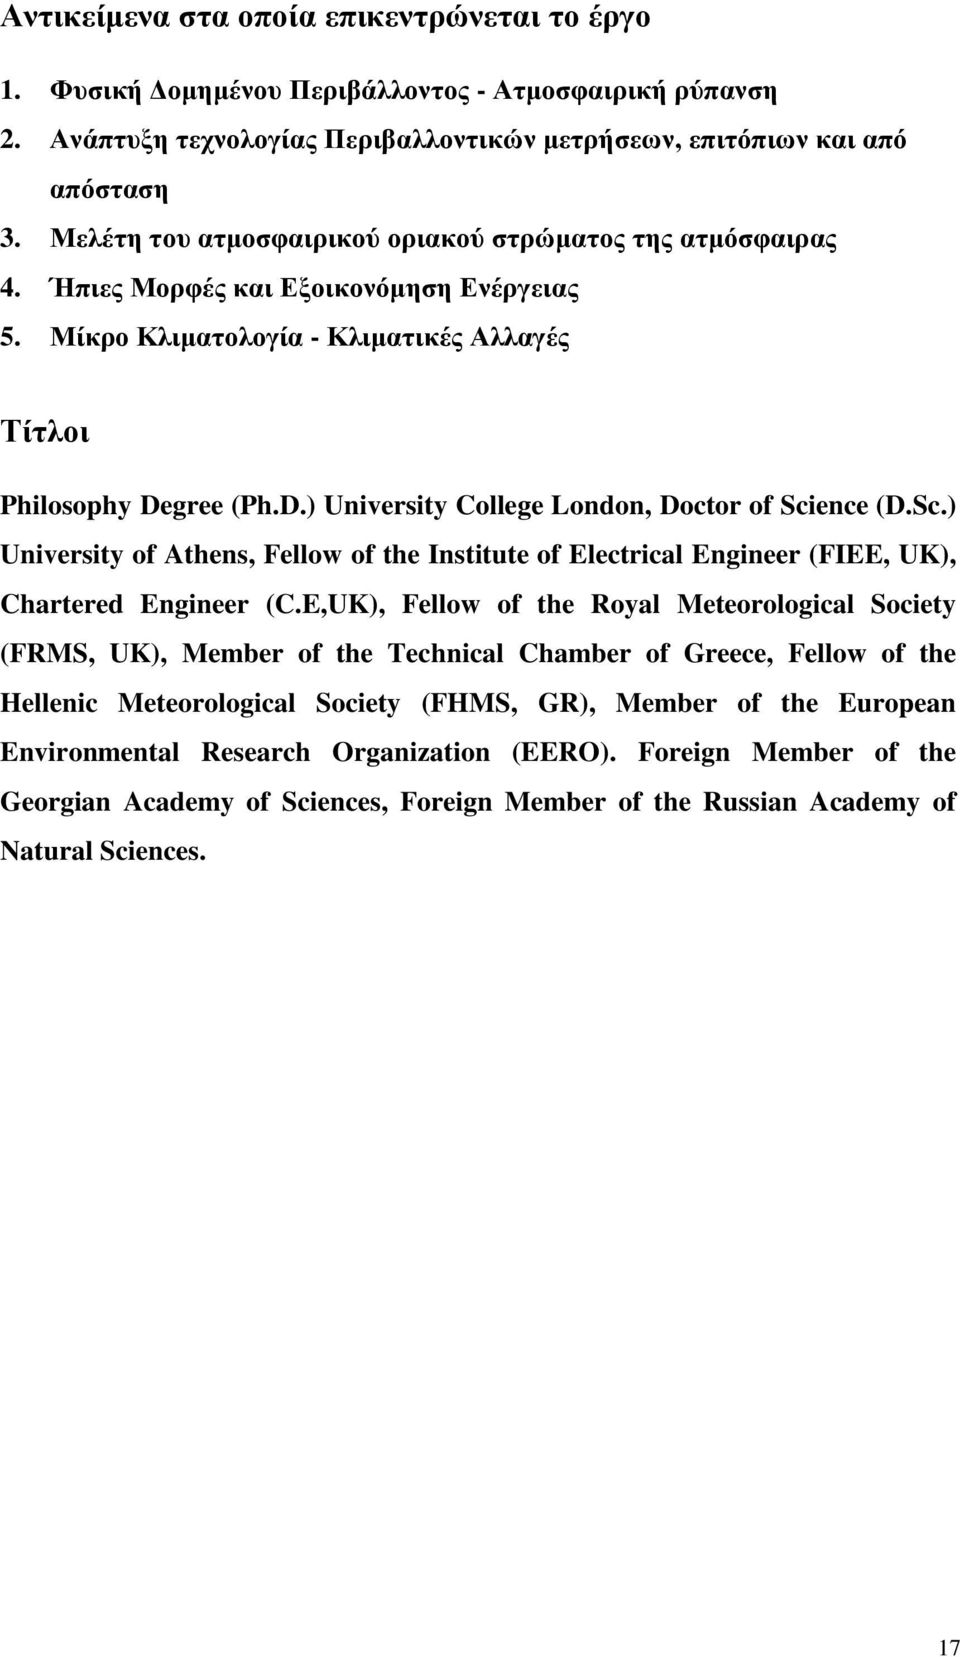 gree (Ph.D.) University College London, Doctor of Science (D.Sc.) University of Athens, Fellow of the Institute of Electrical Engineer (FIEE, UK), Chartered Engineer (C.